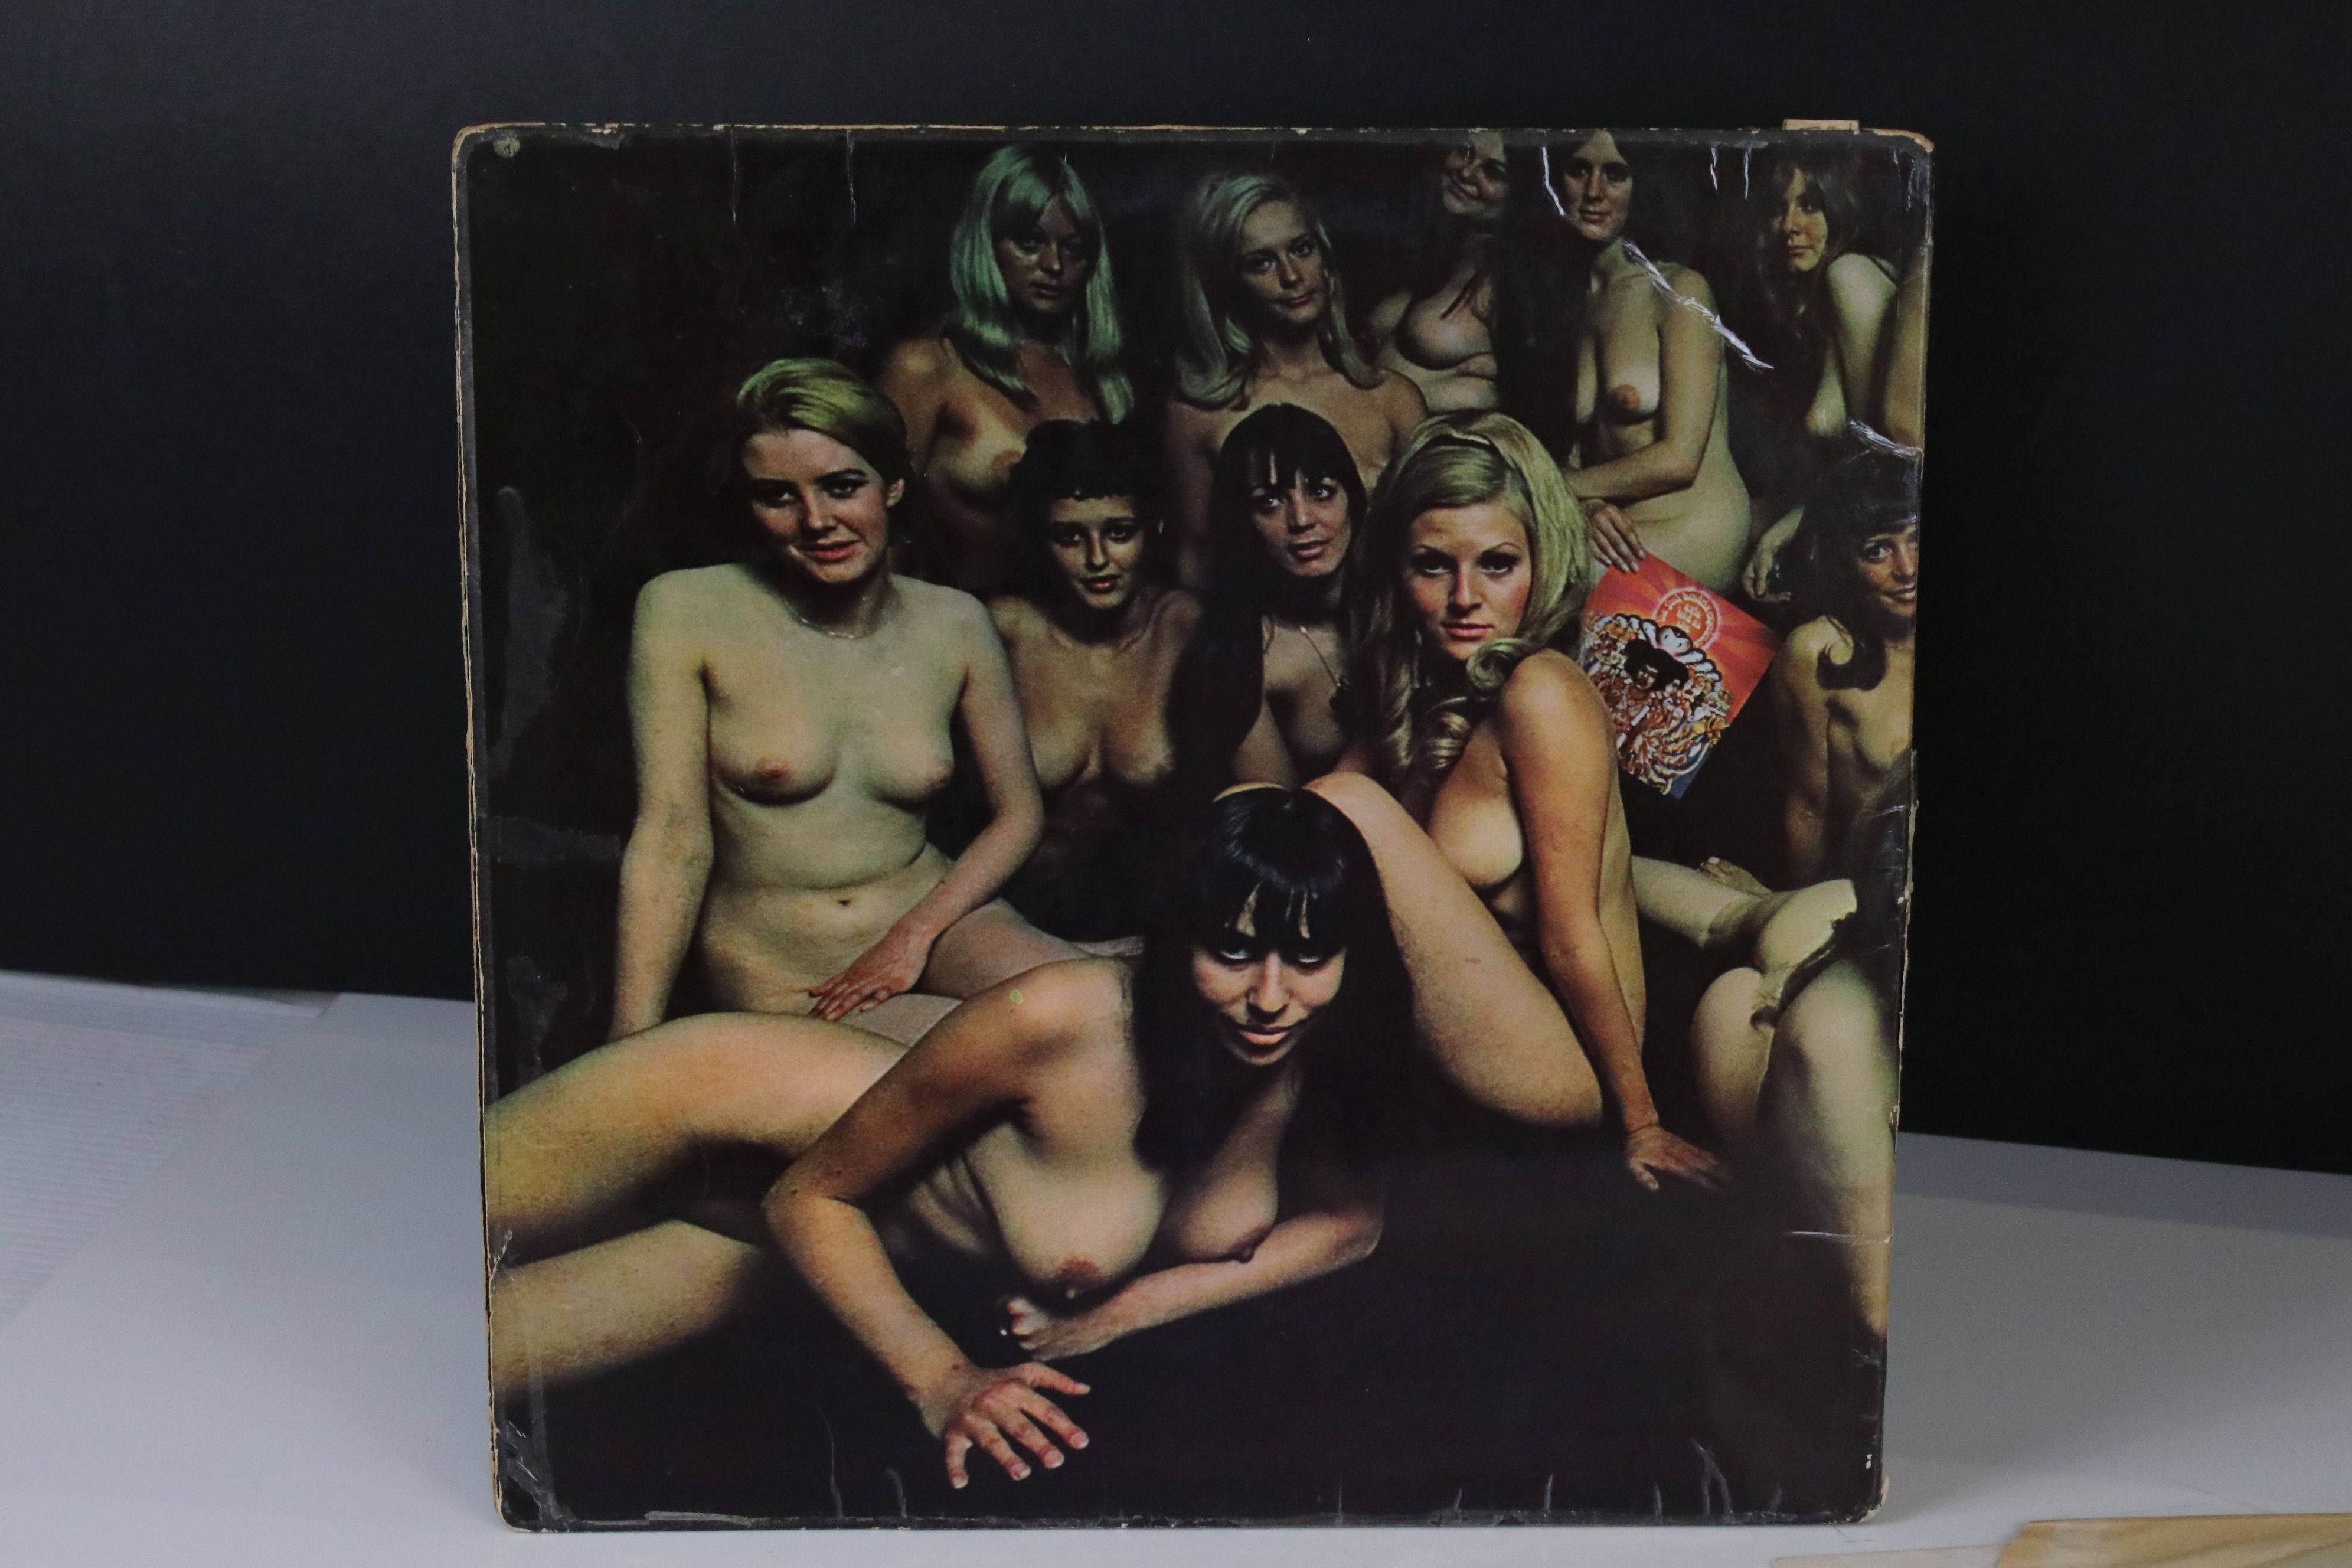 Vinyl - Jimi Hendrix Electric Ladyland LP on Track 613008/9 with inner with blue lettering with Jimi - Image 8 of 9